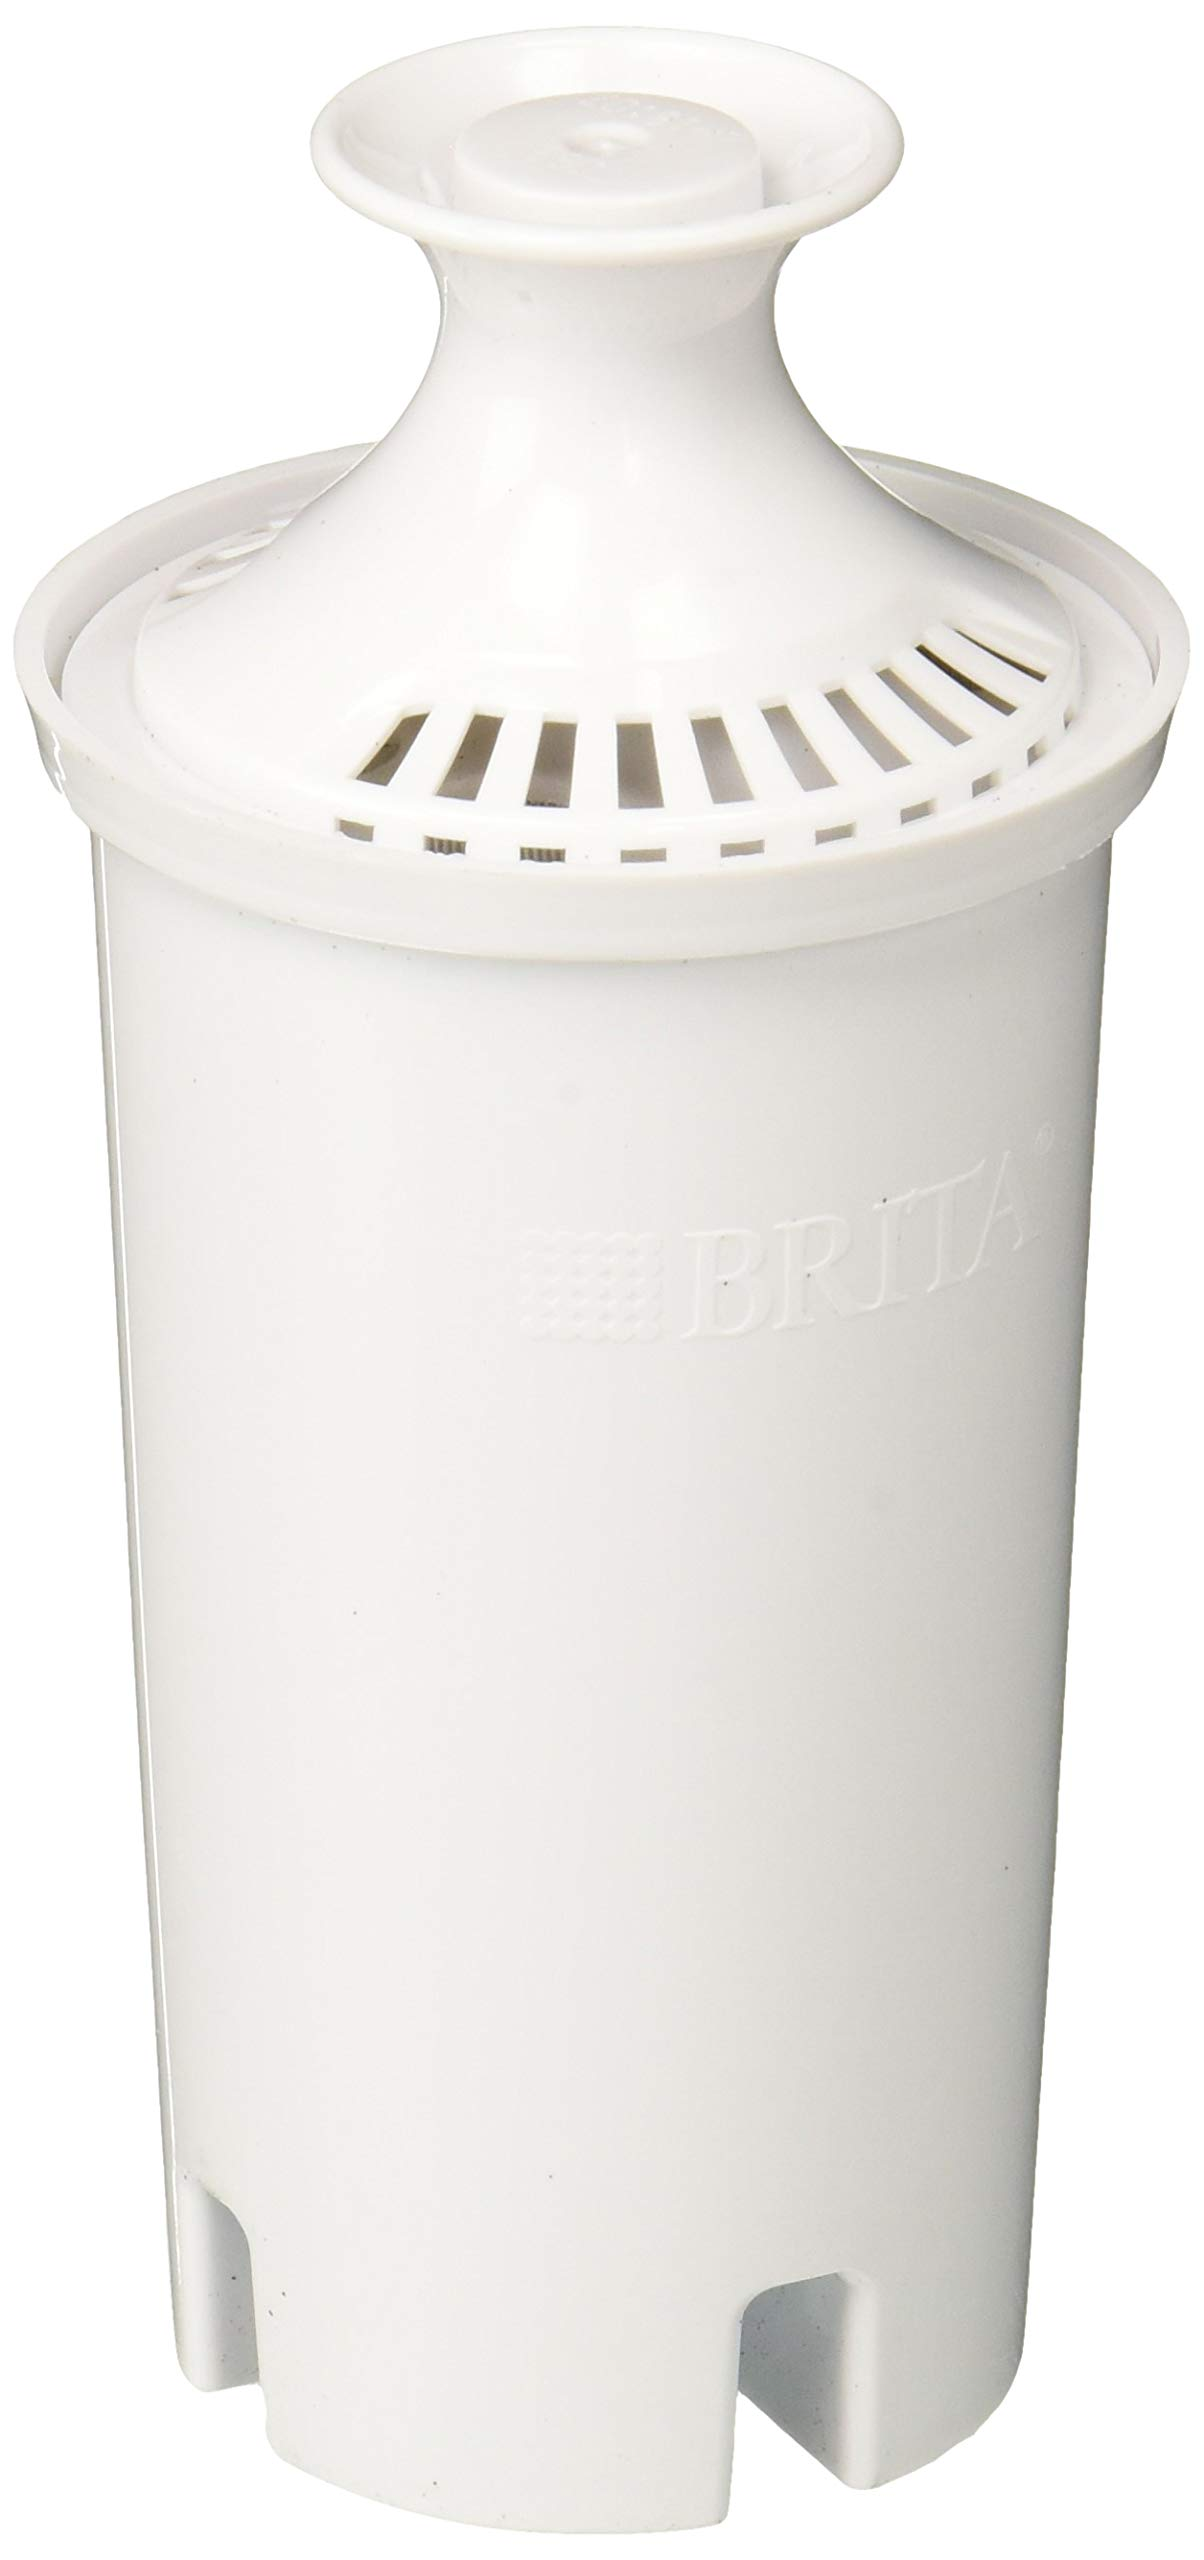 Brita Standard Water Filter, Standard Replacement Filters for Pitchers and Dispensers, BPA Free - 3 Count by Brita